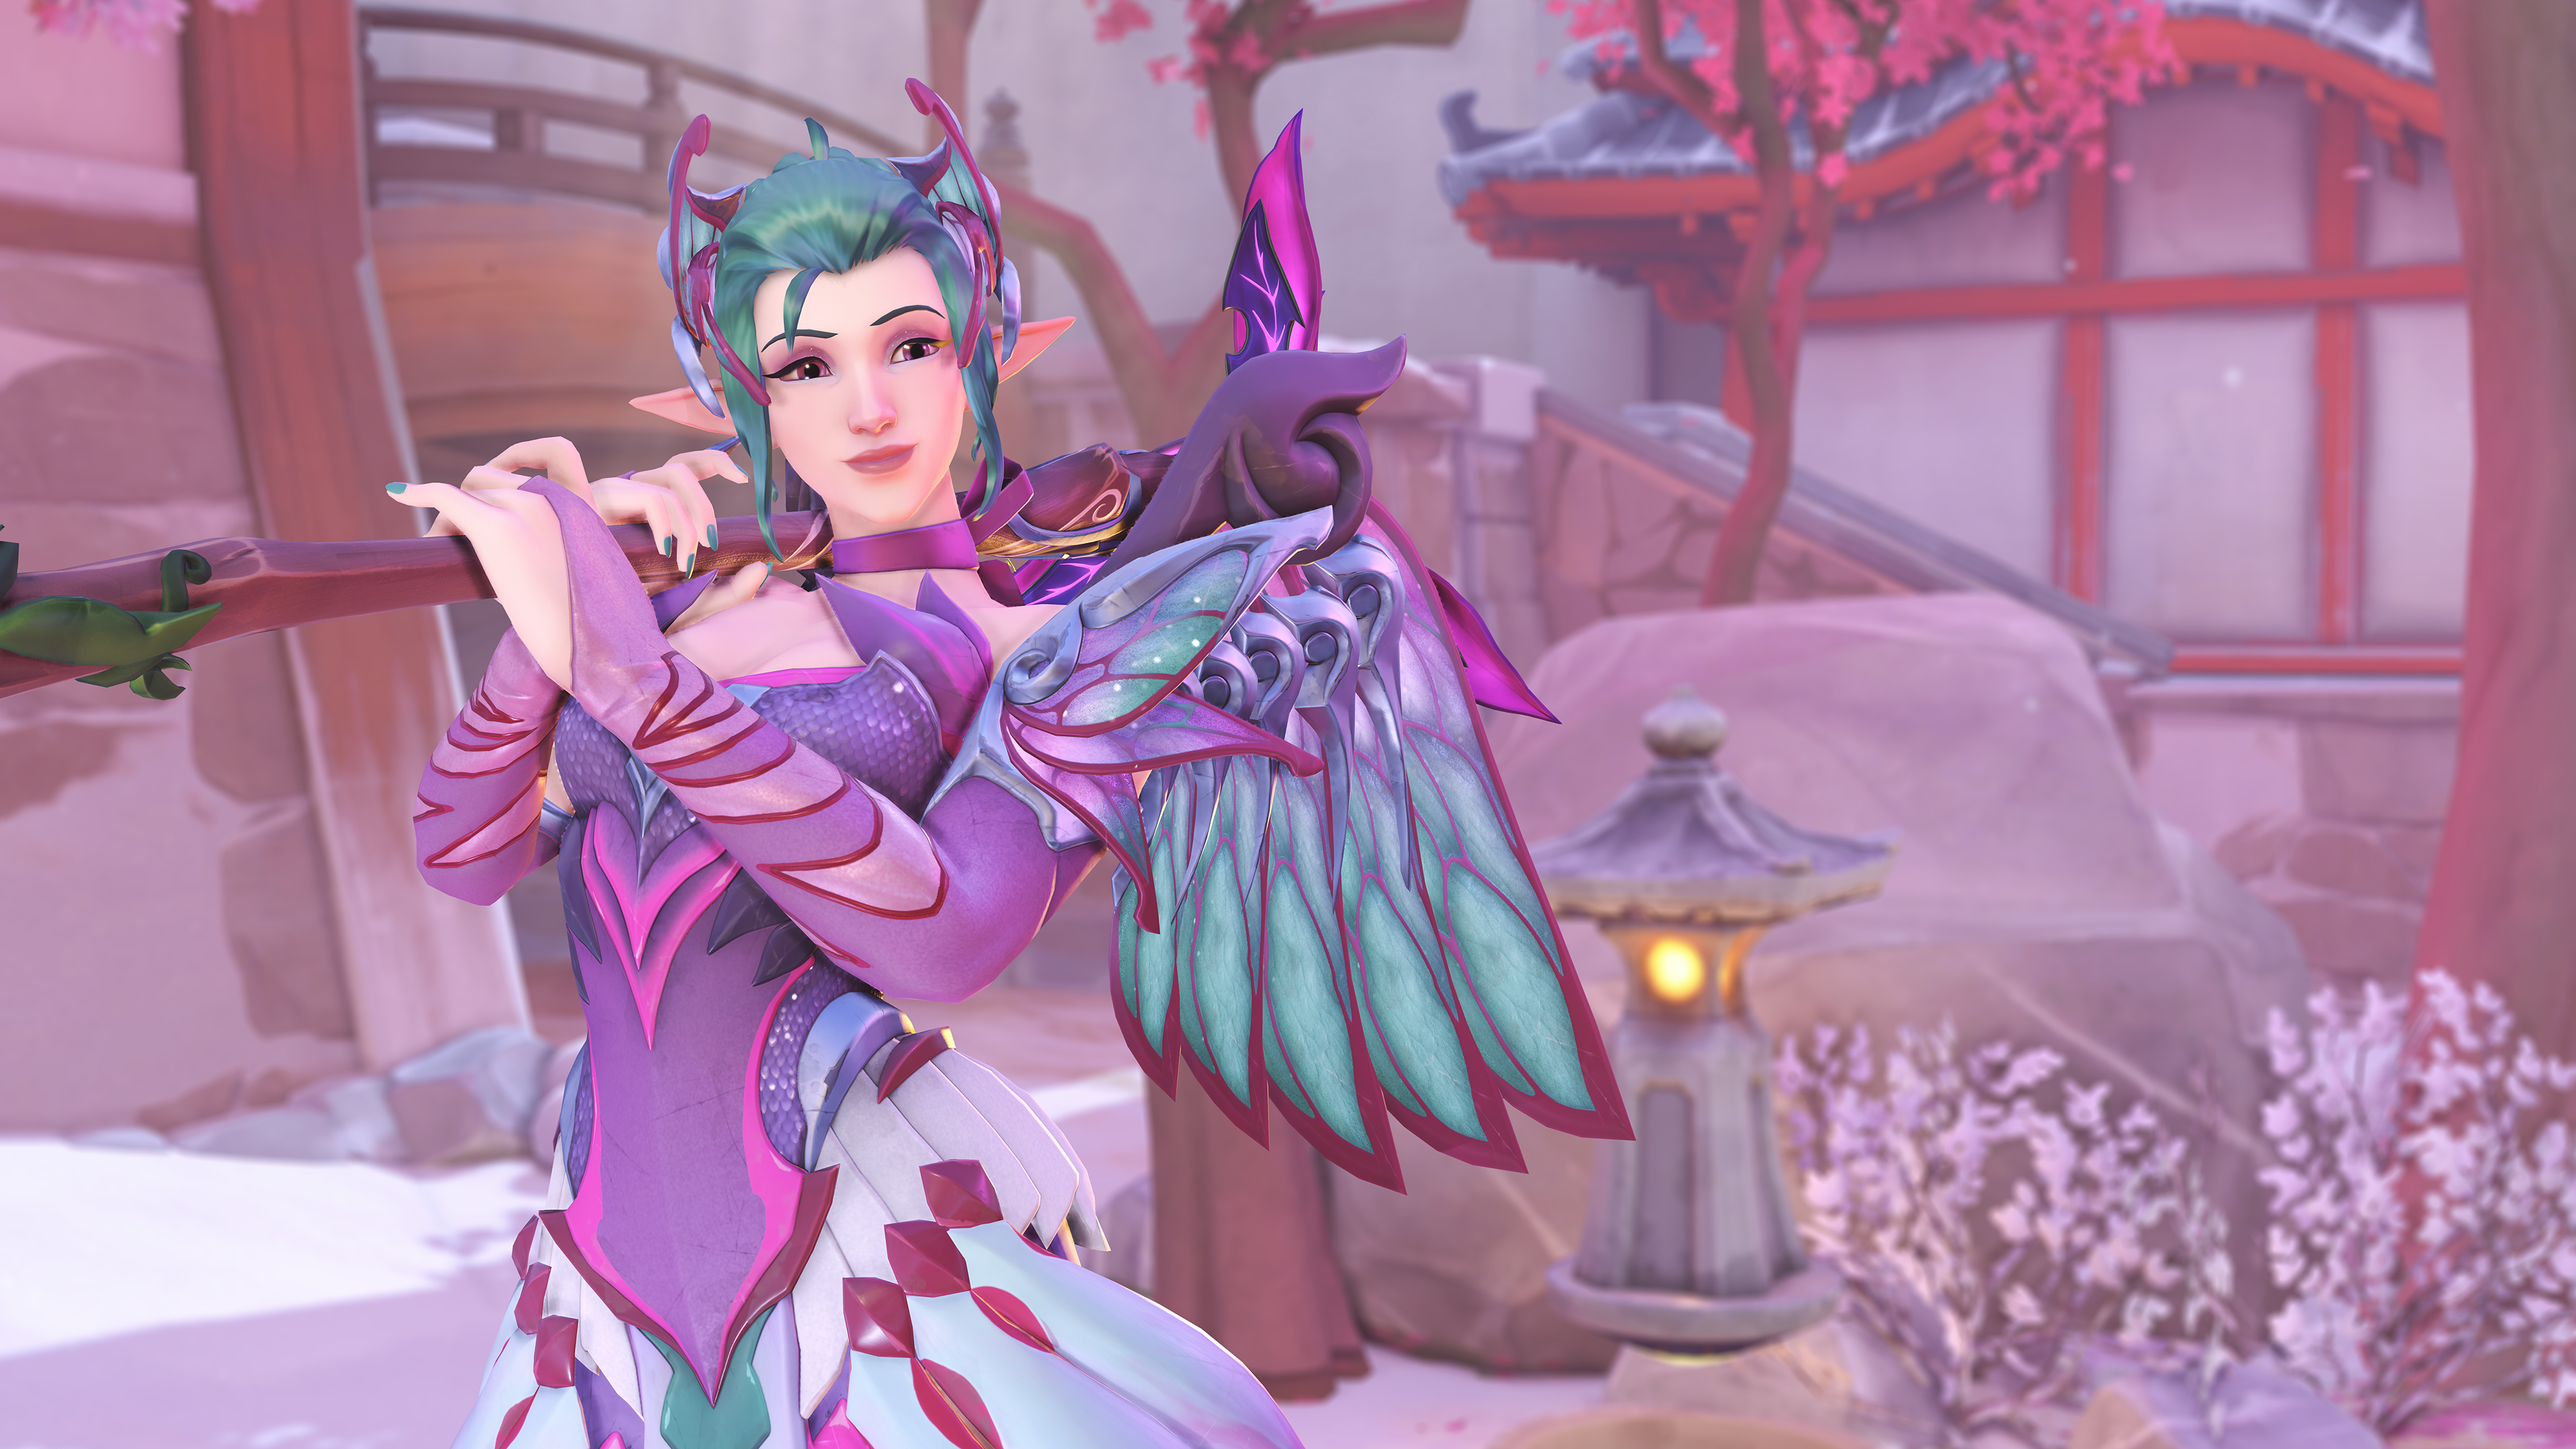 Overwatch Winter Wonderland 2018 Skins Event Dates And Game Modes